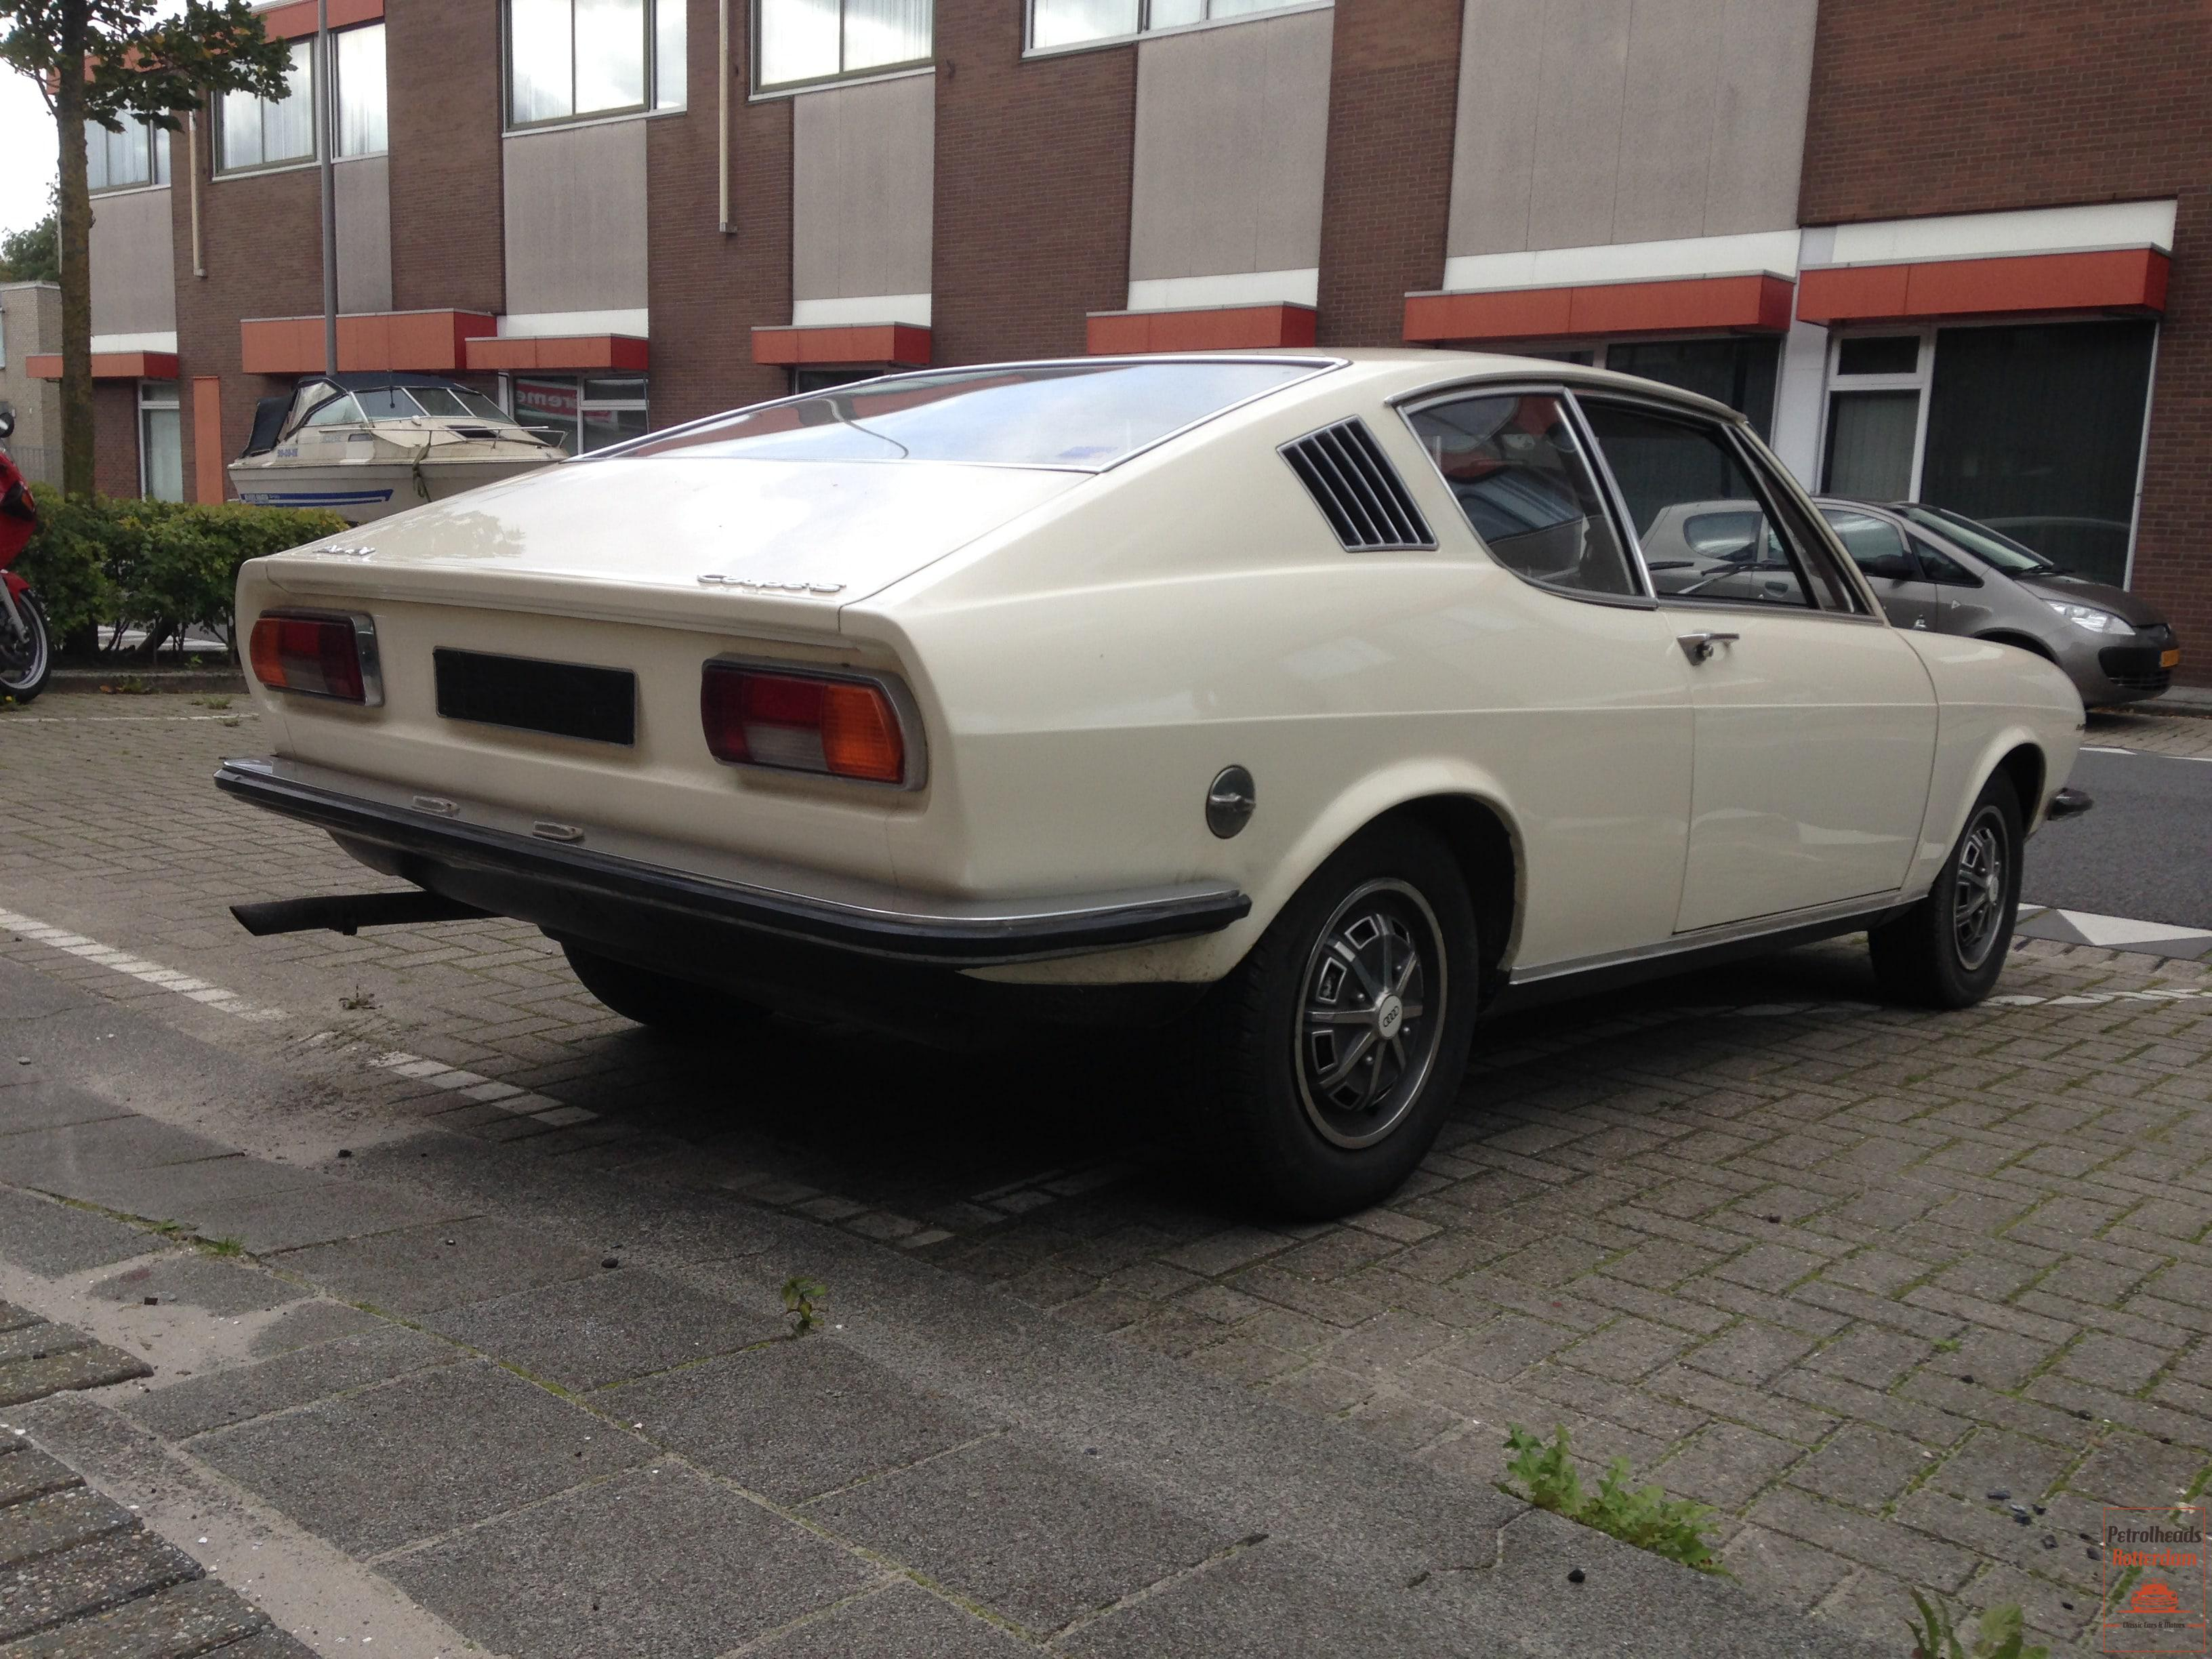 Audi 100 S Coupe - 1973